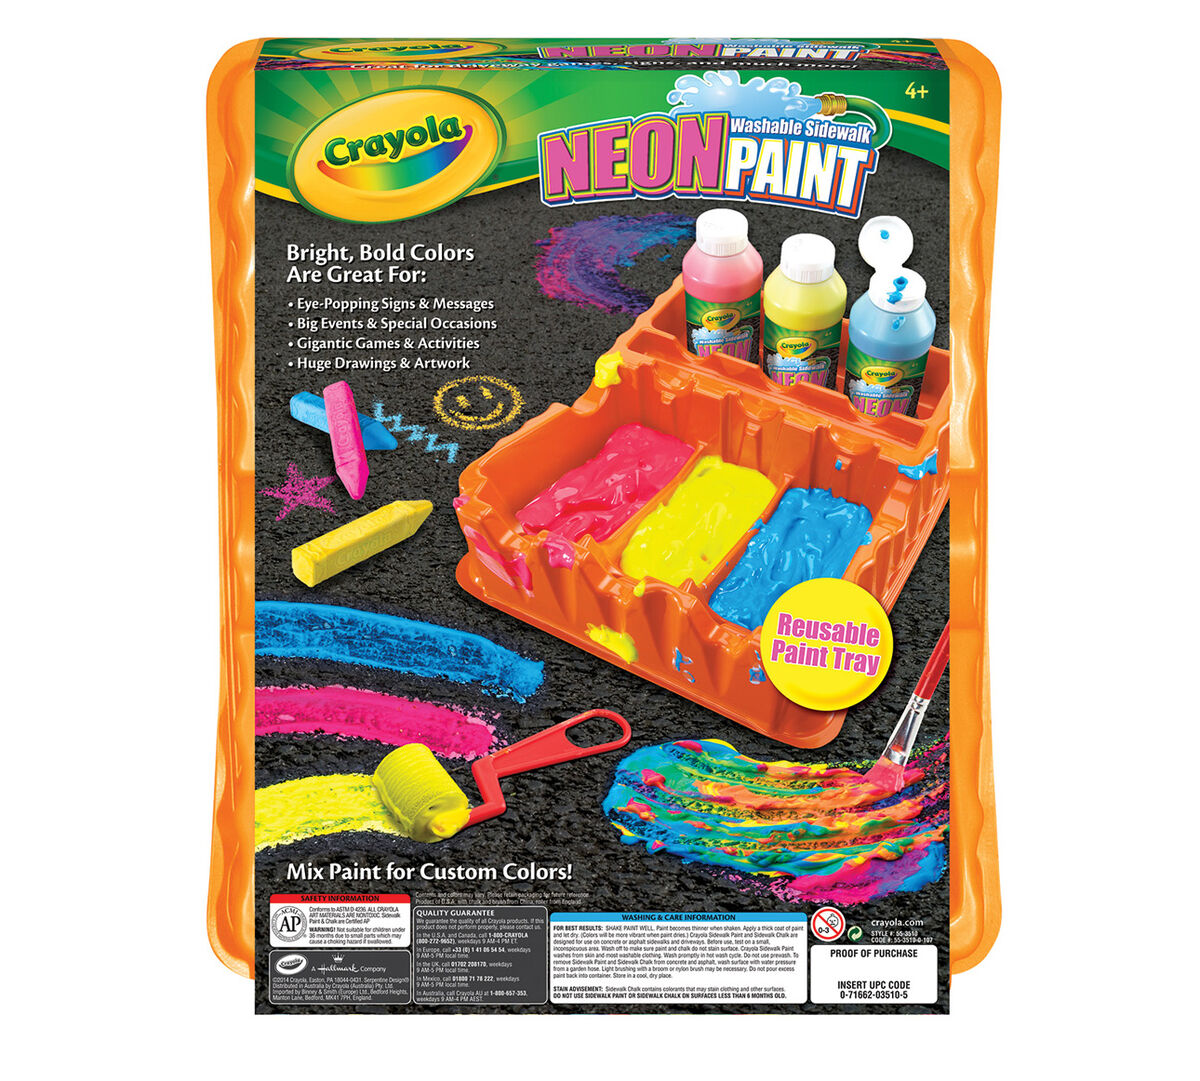 Washable Sidewalk Neon Paint Tray Crayola